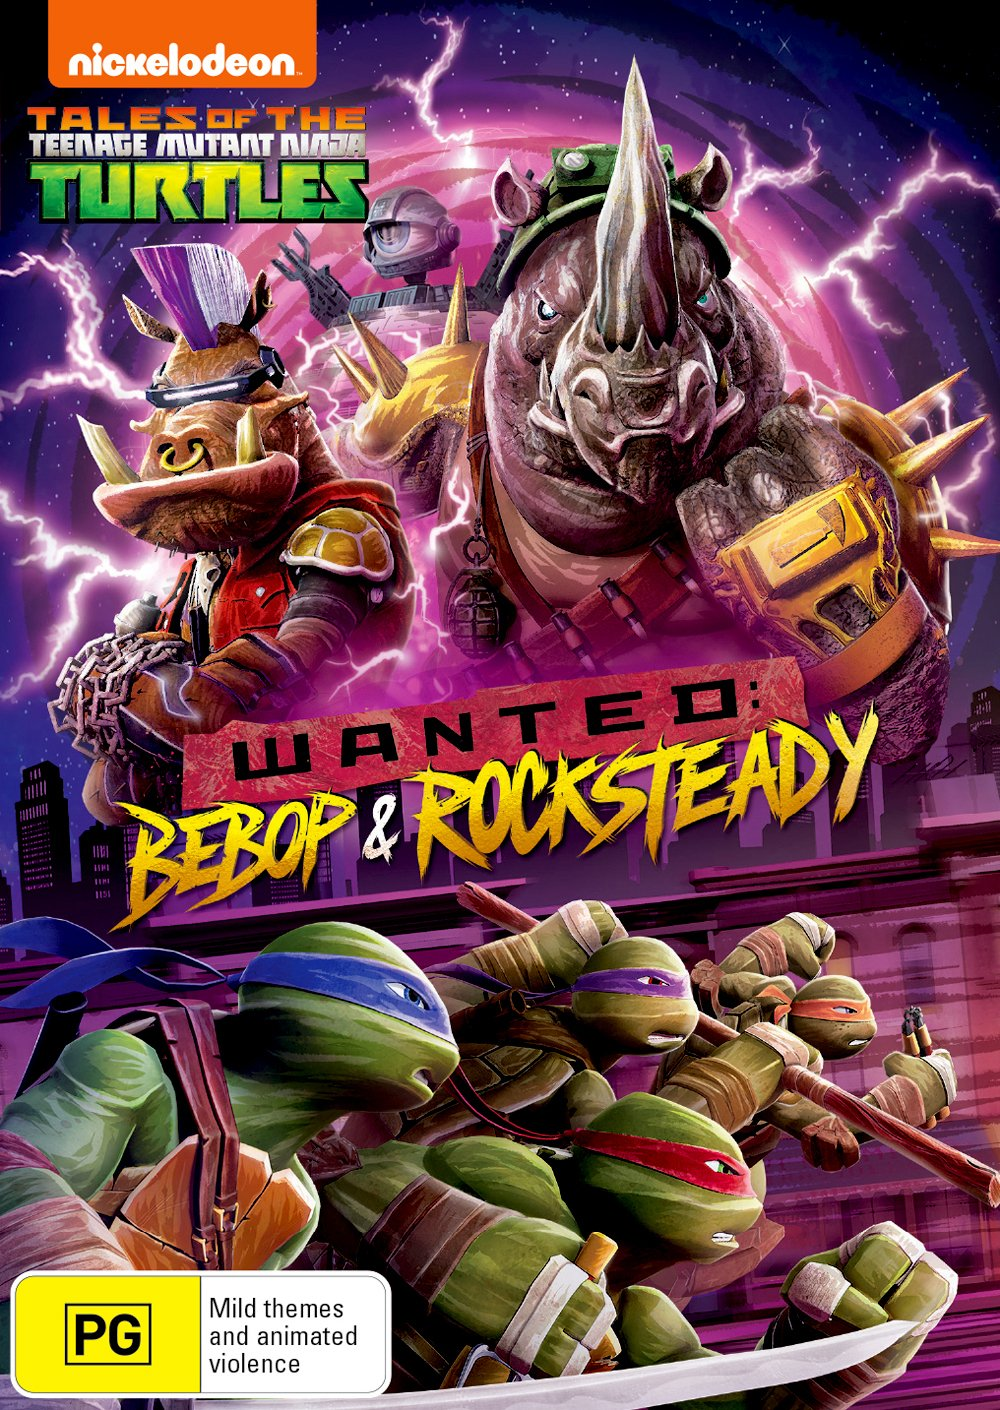 Teenage Mutant Ninja Turtles: Wanted - Bebop & Rocksteady ...